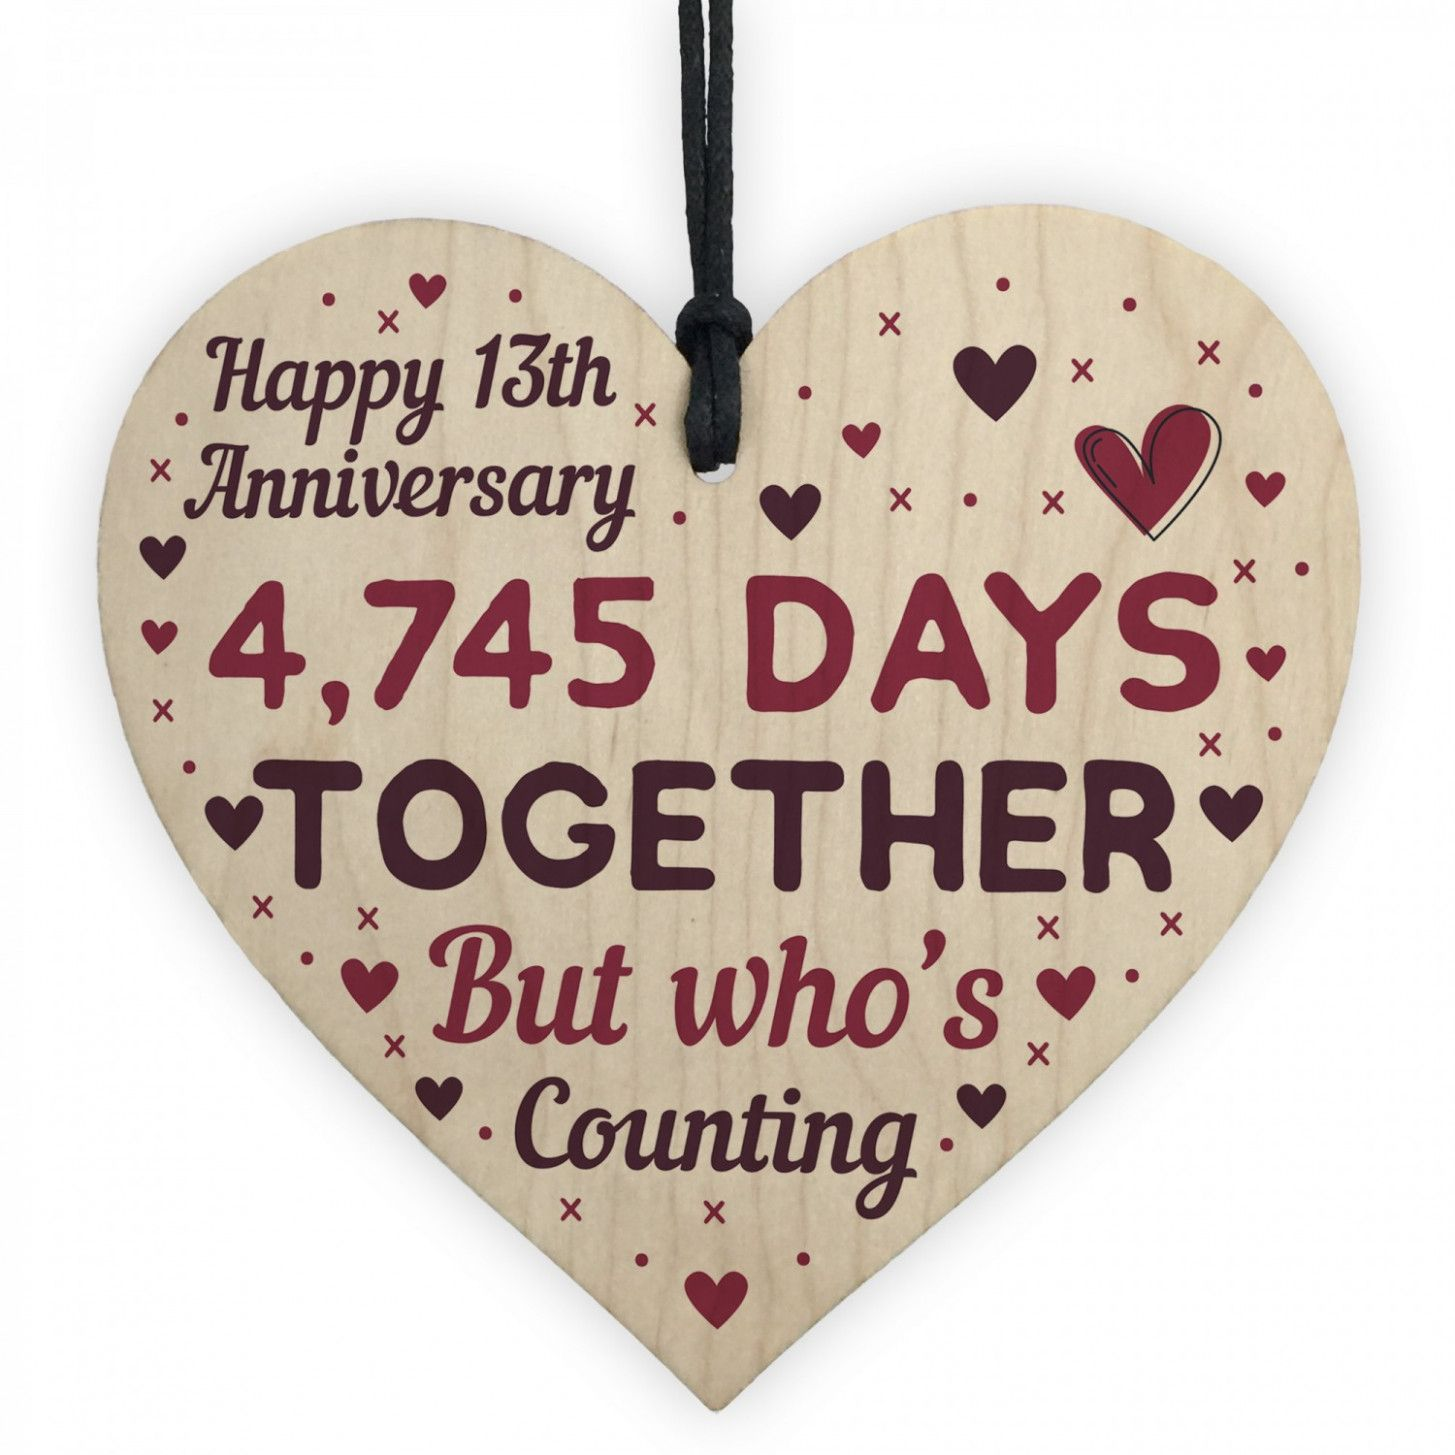 9 13th Wedding Anniversary Cards For Husband In 2020 Anniversary Cards For Husband Happy 10th Anniversary Wedding Anniversary Cards